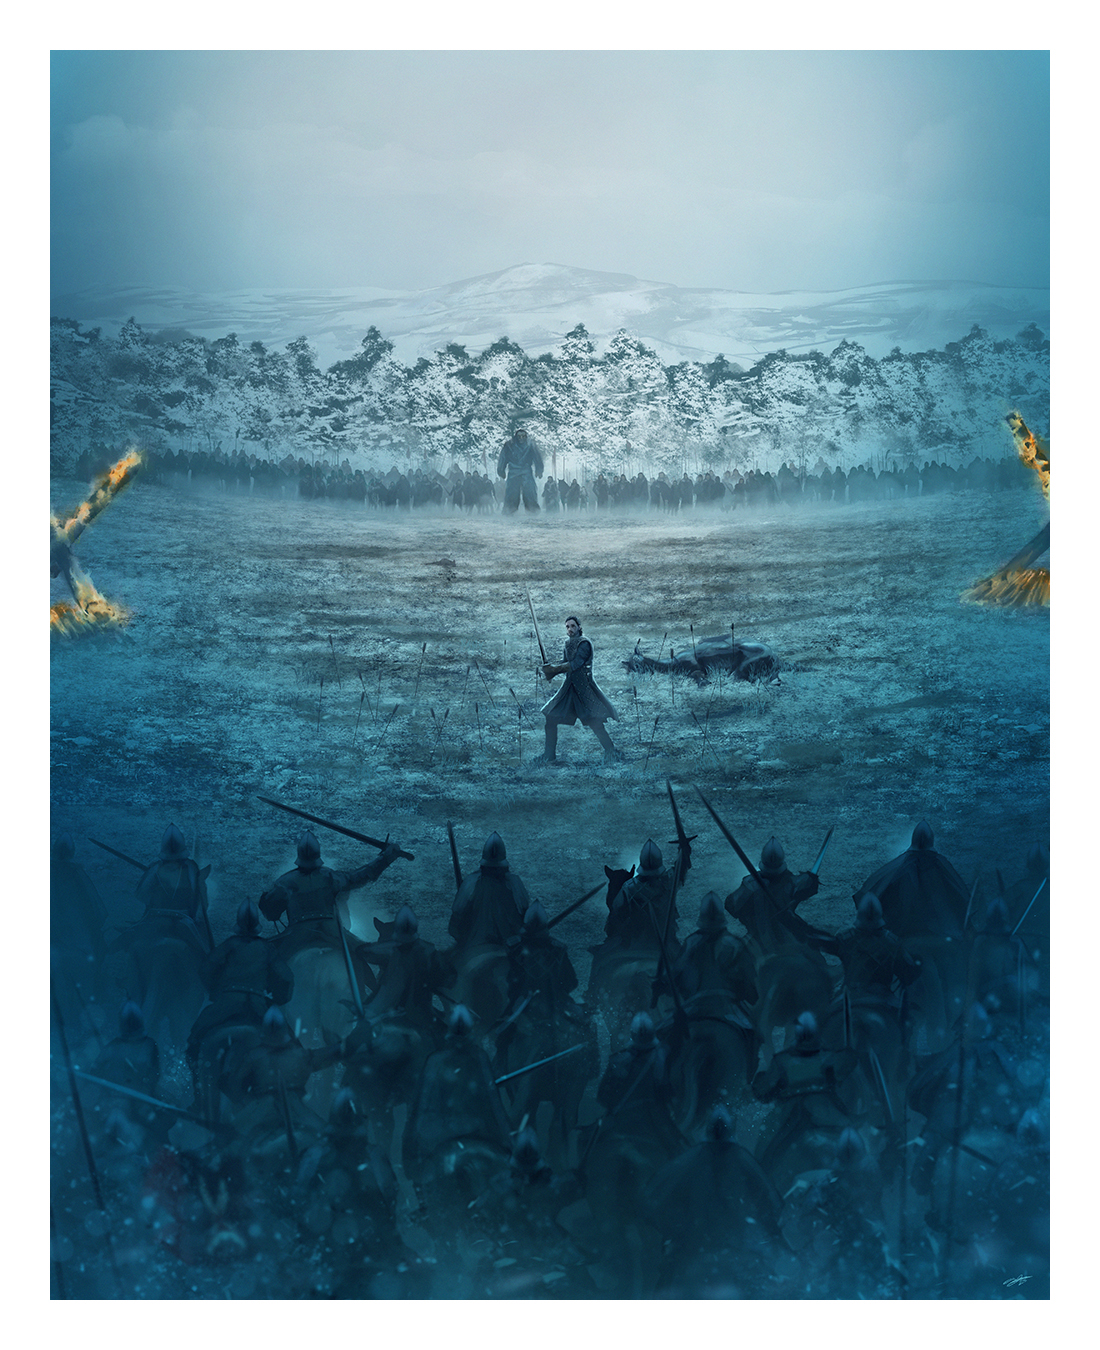 Battle Of The Bastards by Andy Fairhurst